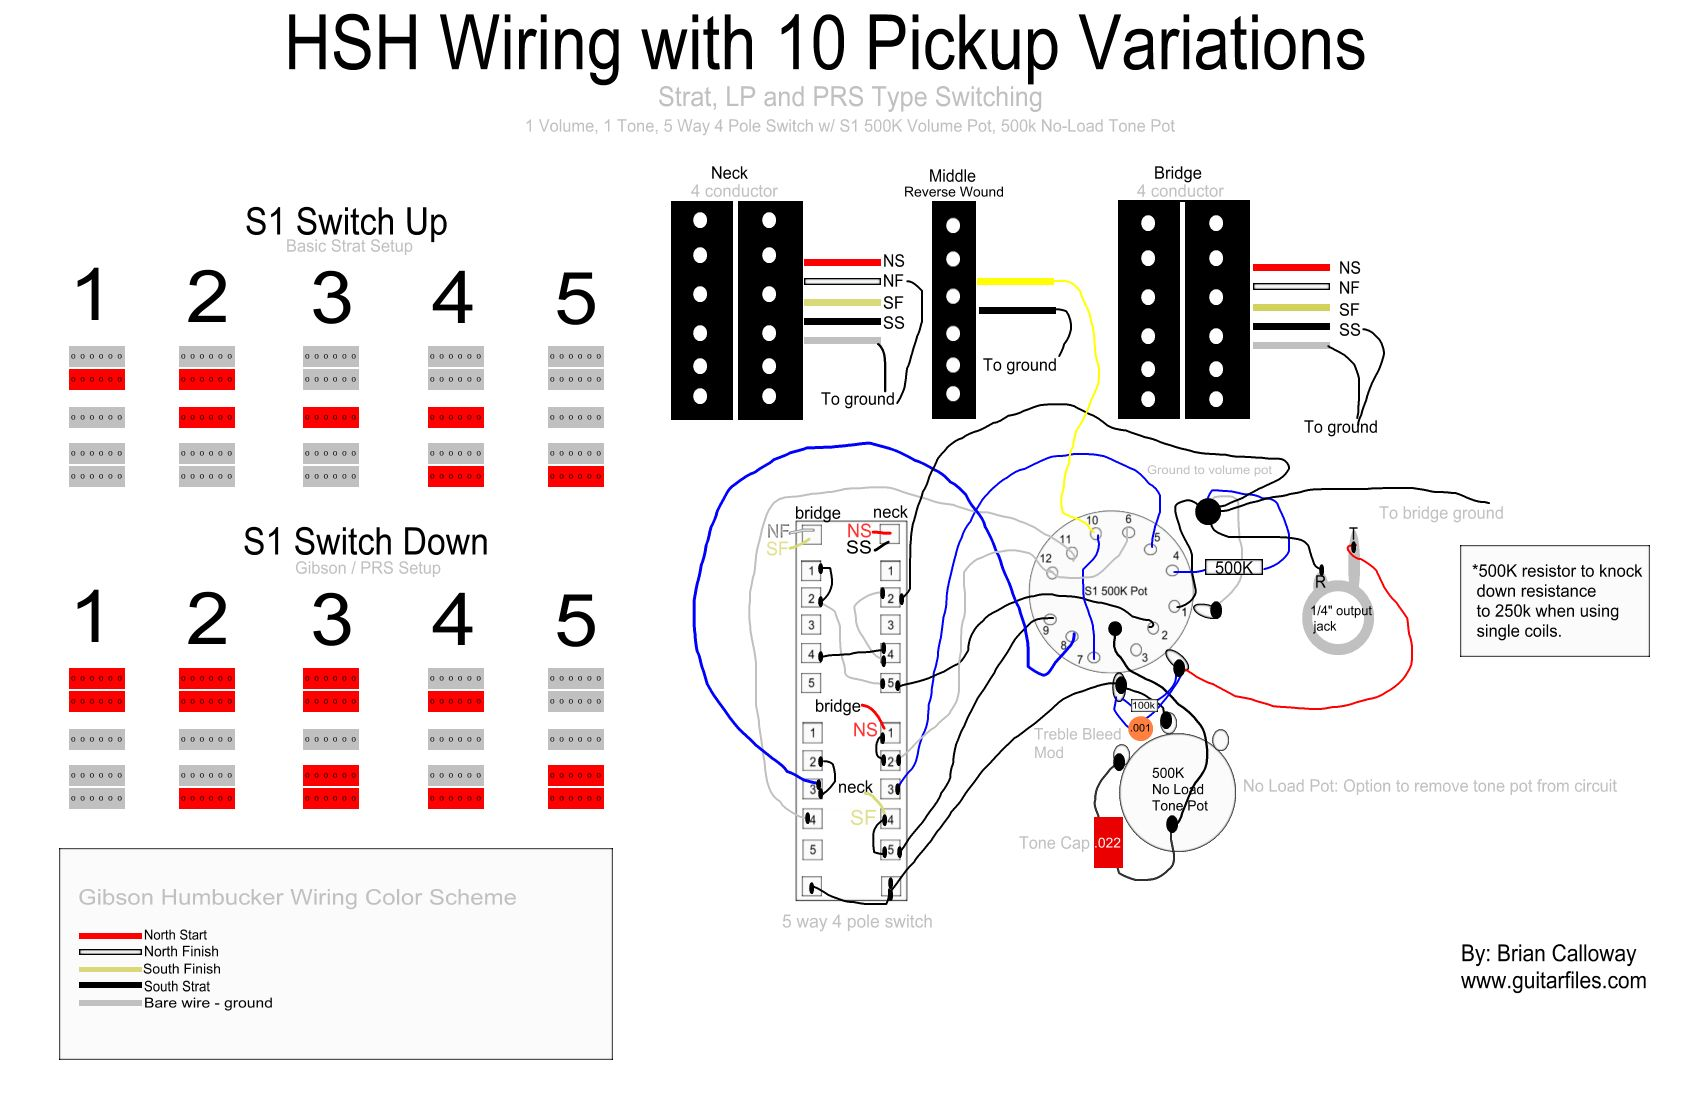 HSH Guitar Wiring - 10 Pickup Combinations. 4 Pole Switch ...